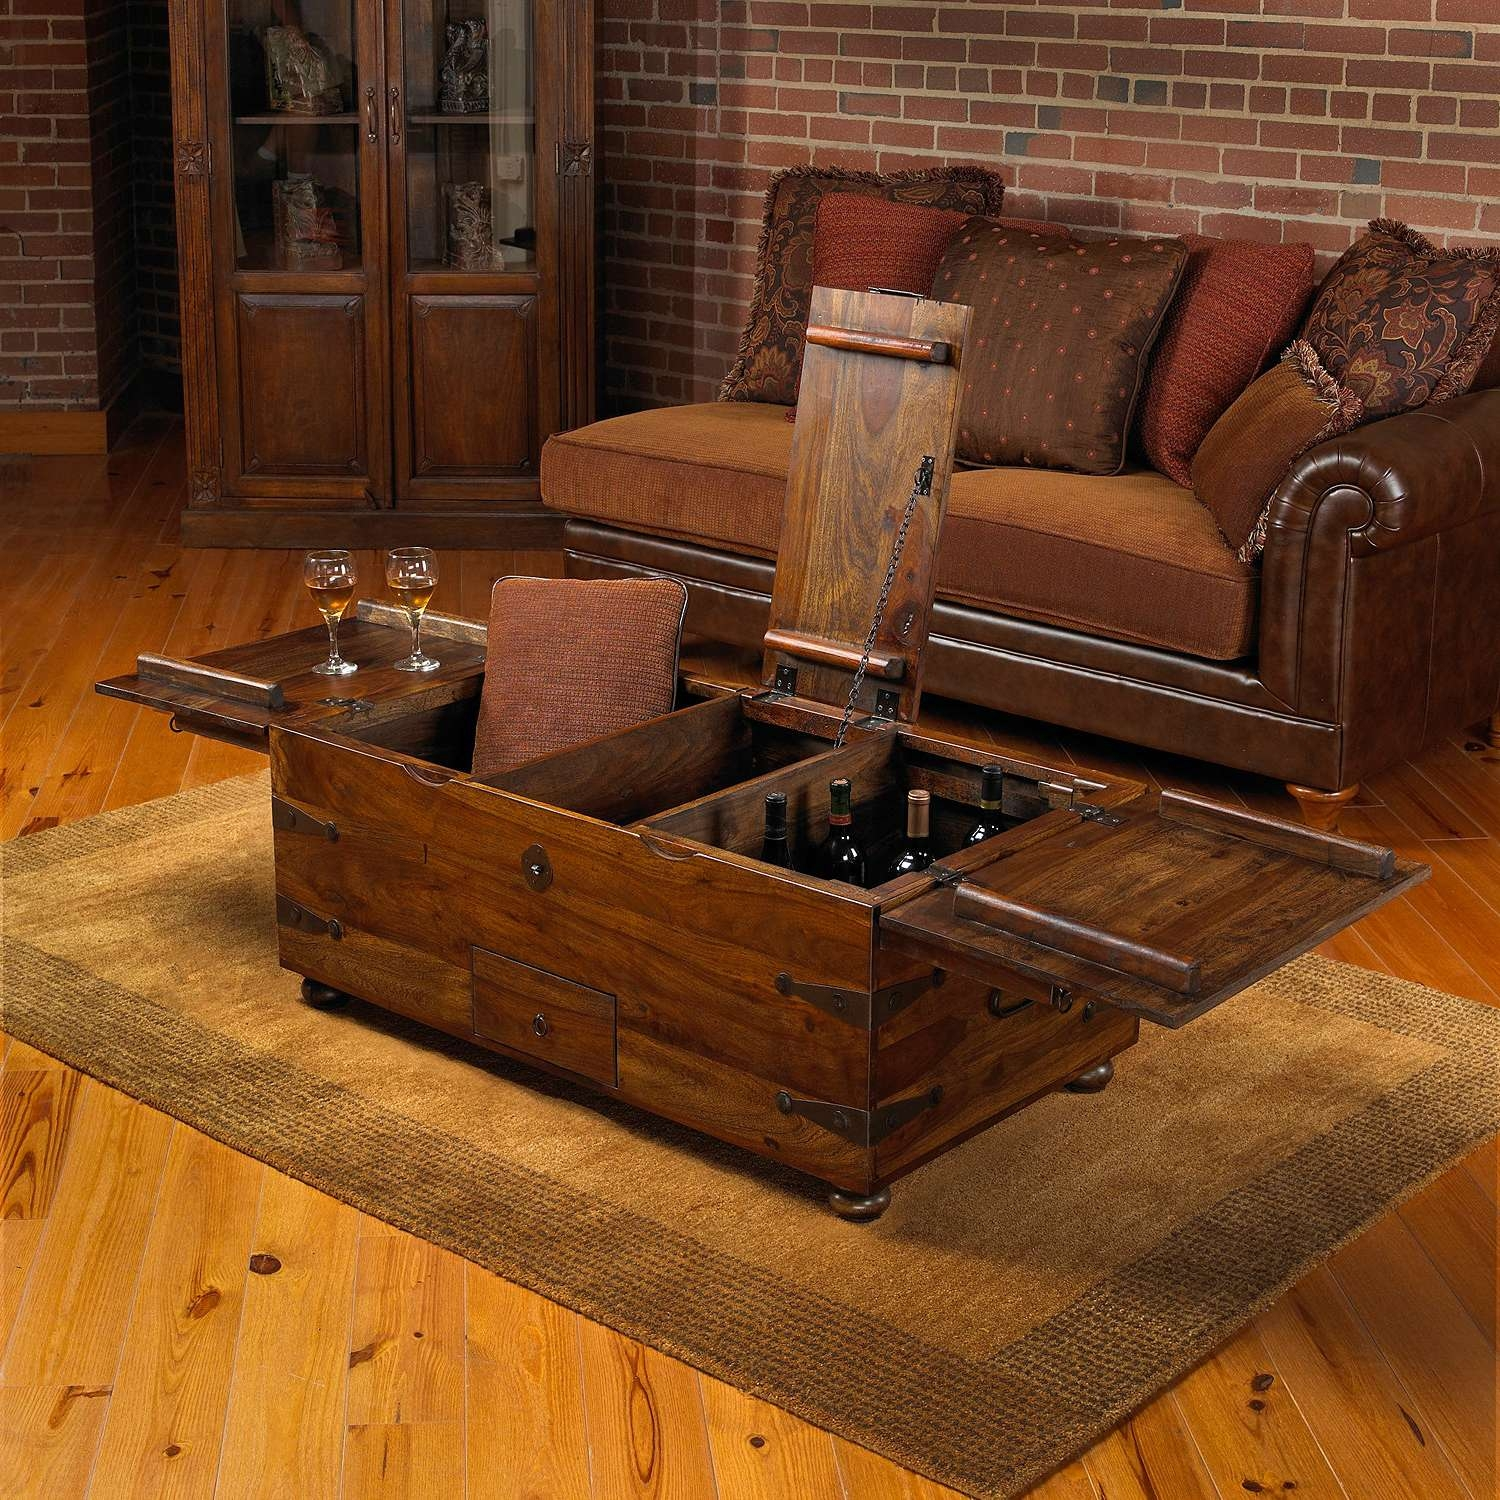 Thakat Bar Box Trunk Coffee Table – Wine Enthusiast Inside Trendy Trunk Chest Coffee Tables (View 19 of 20)